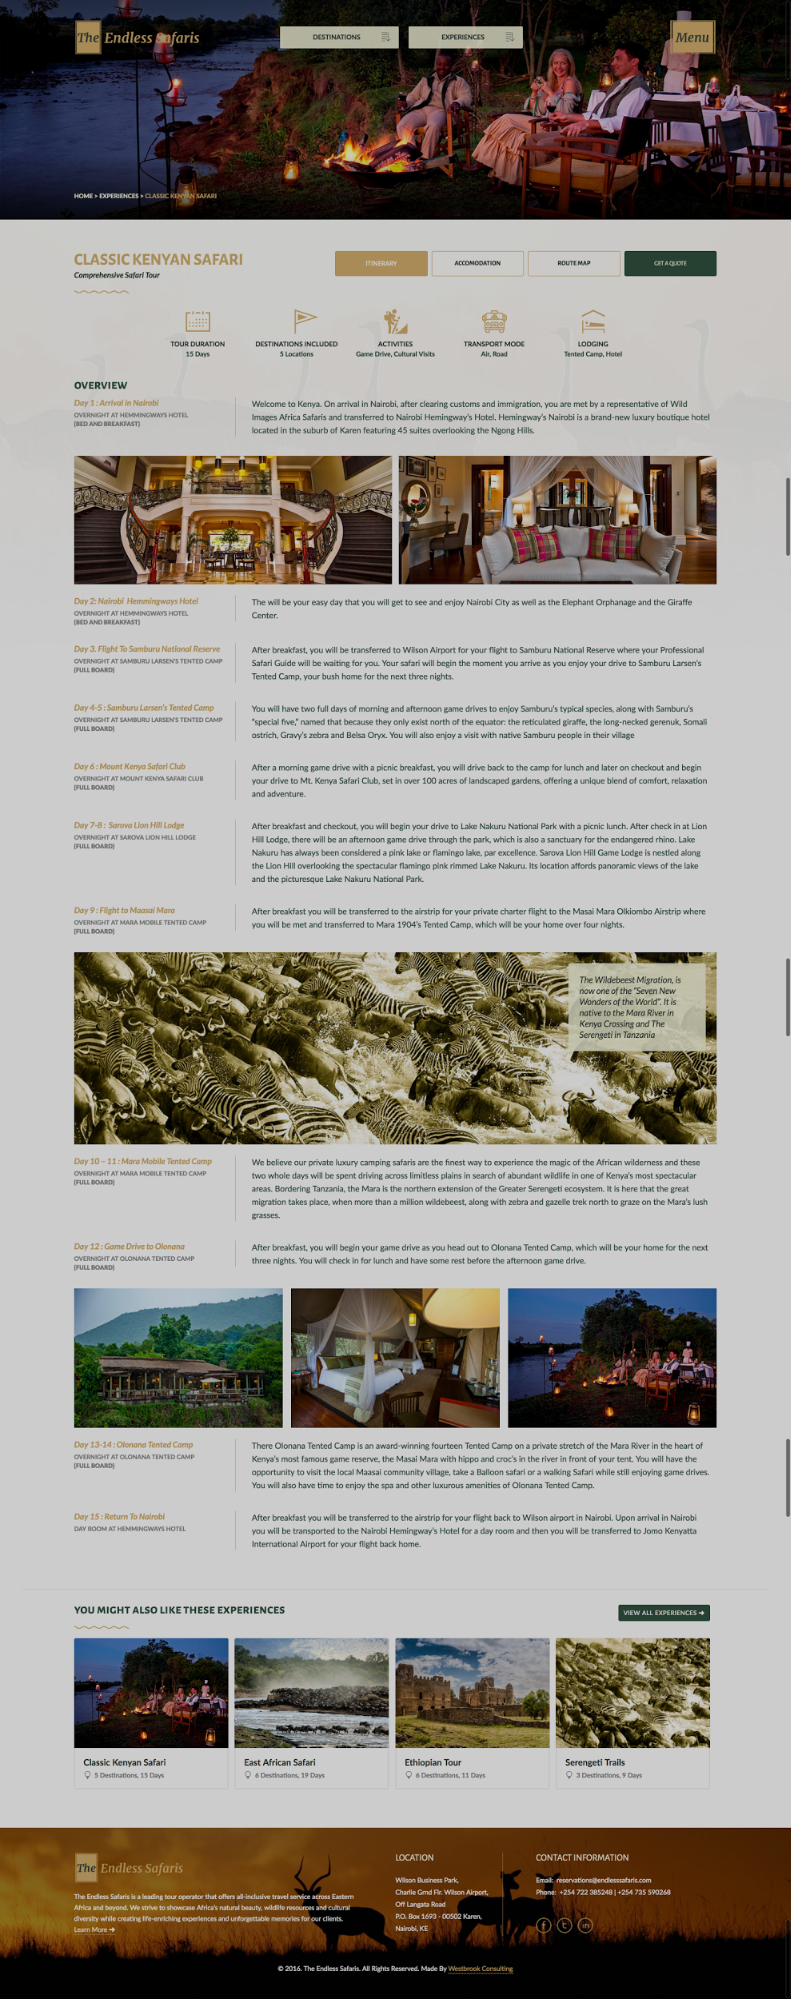 Endless Safaris' itinerary pages